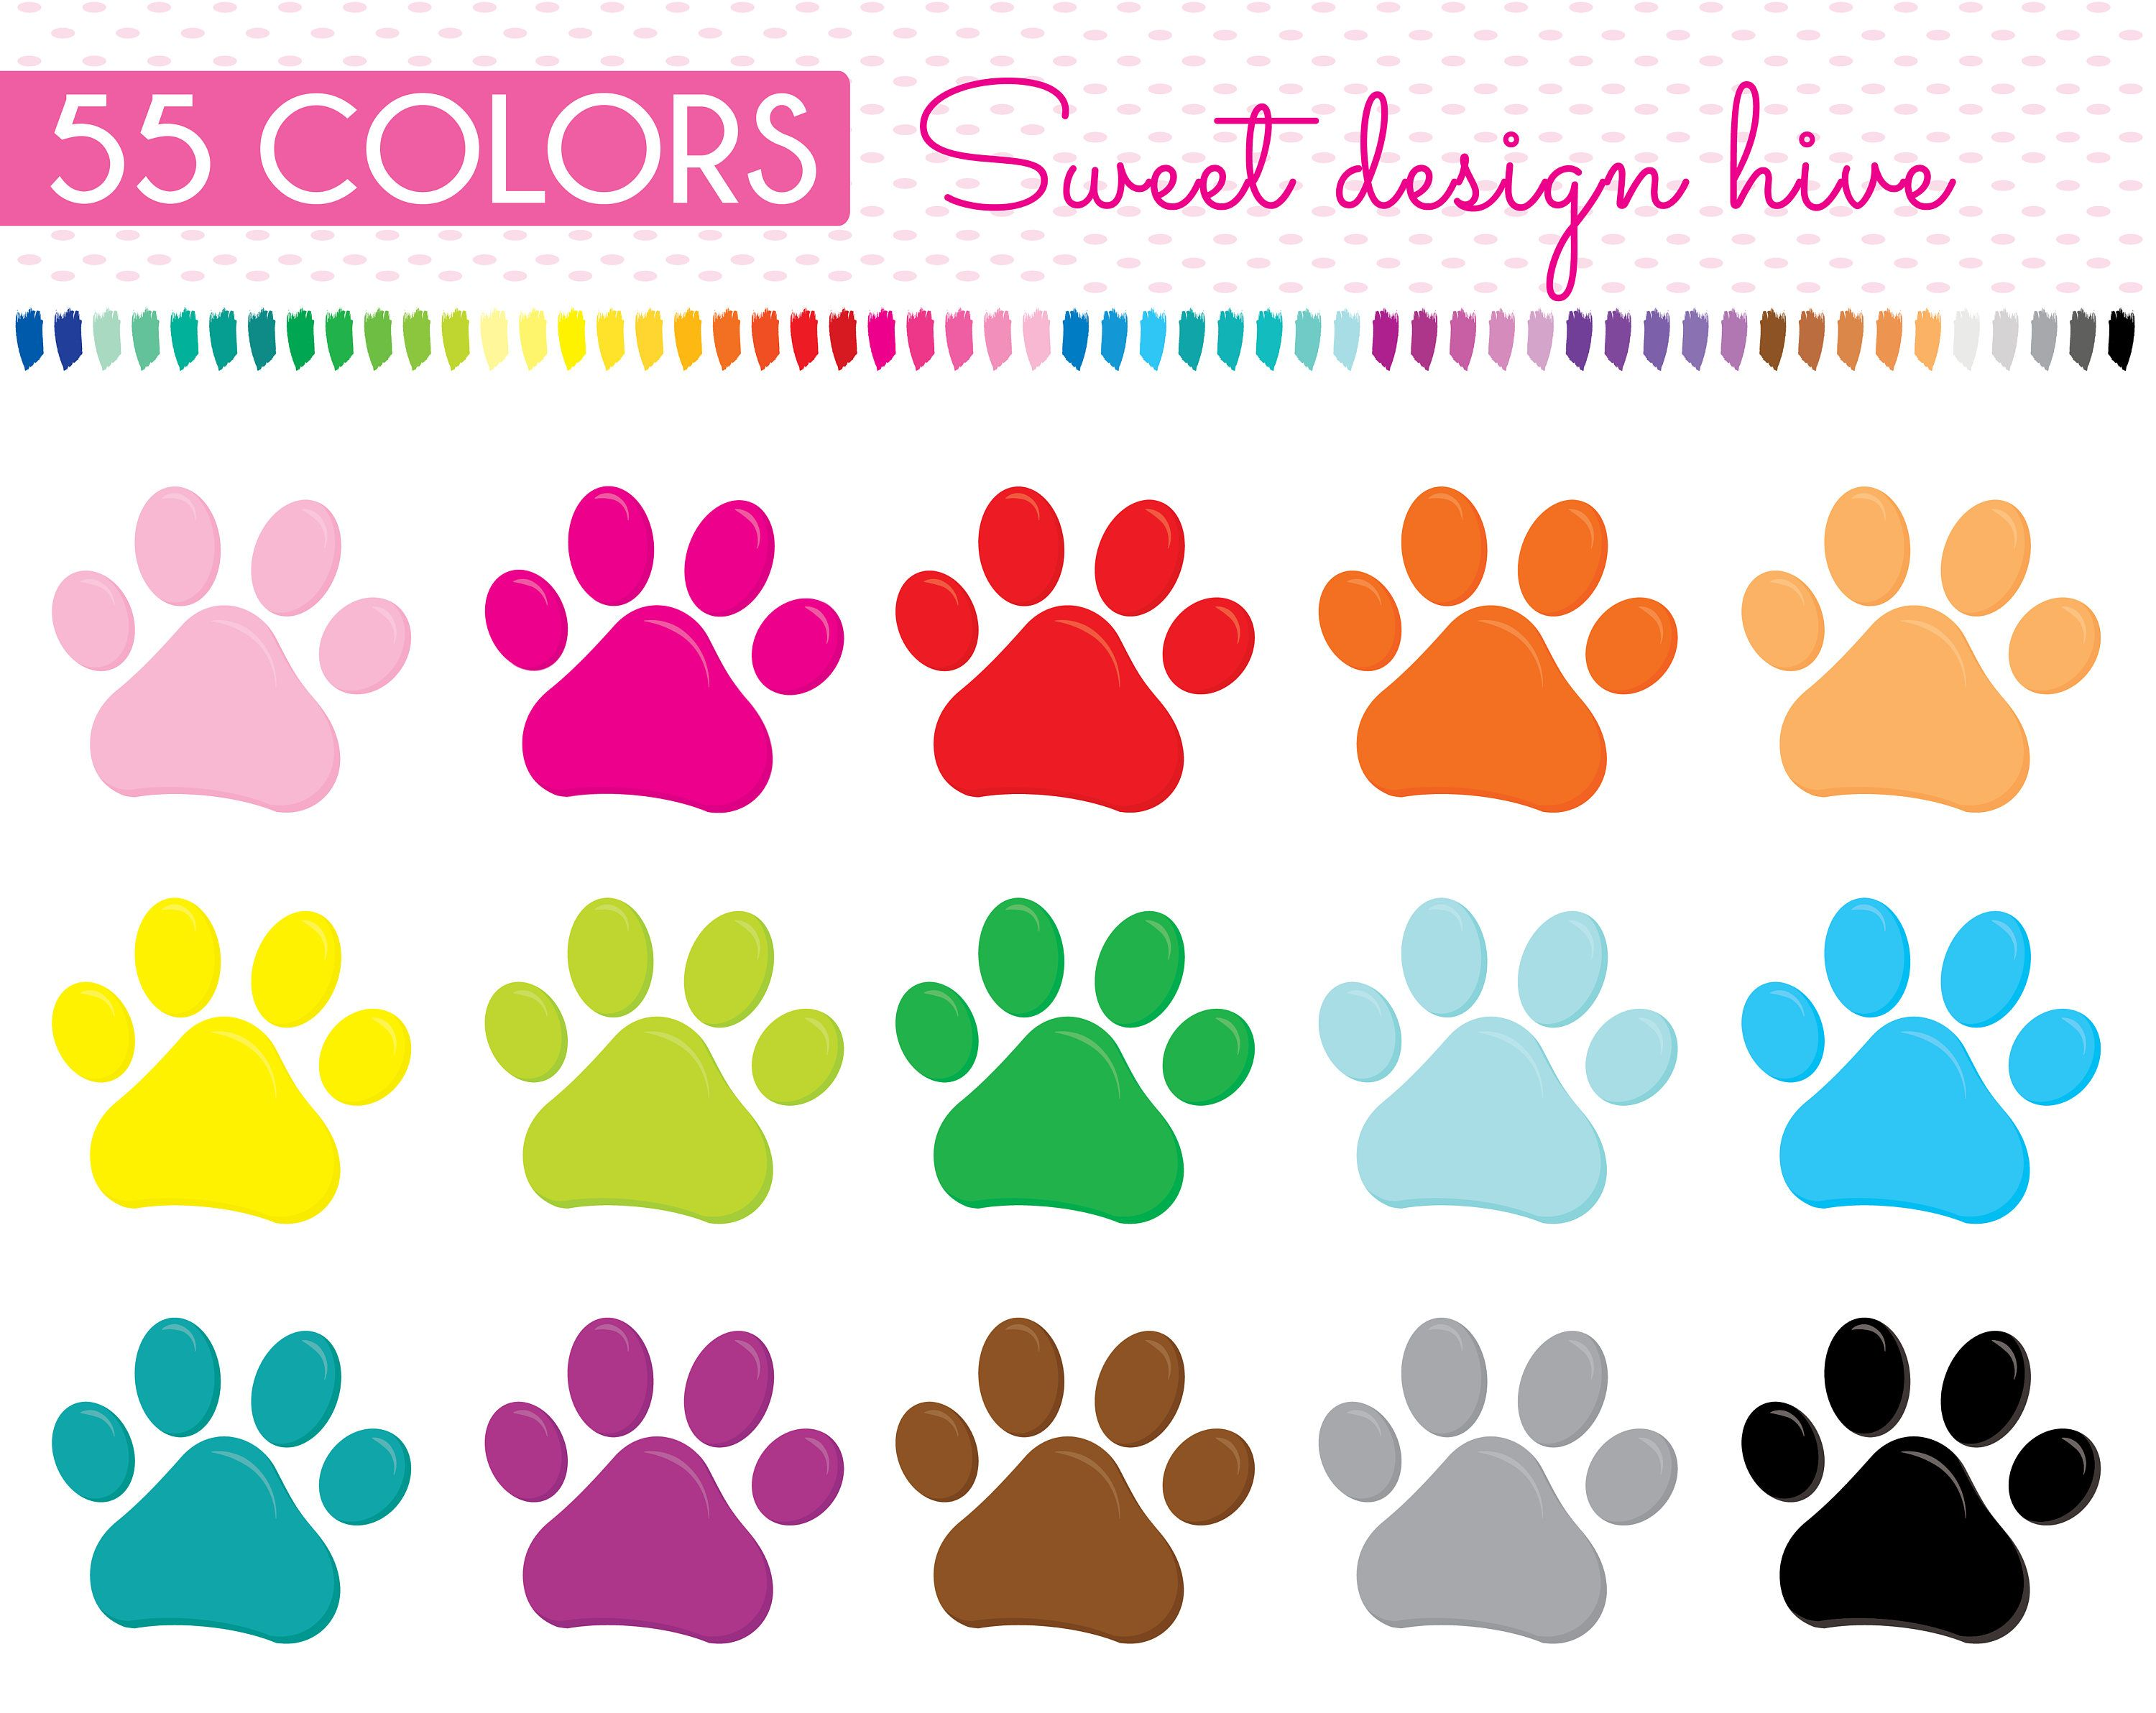 Paw Prints Clipart Rainbow Colors Puppy Paws Clip Art Dog Etsy In 2021 Clip Art Paw Print Scrapbooking Projects